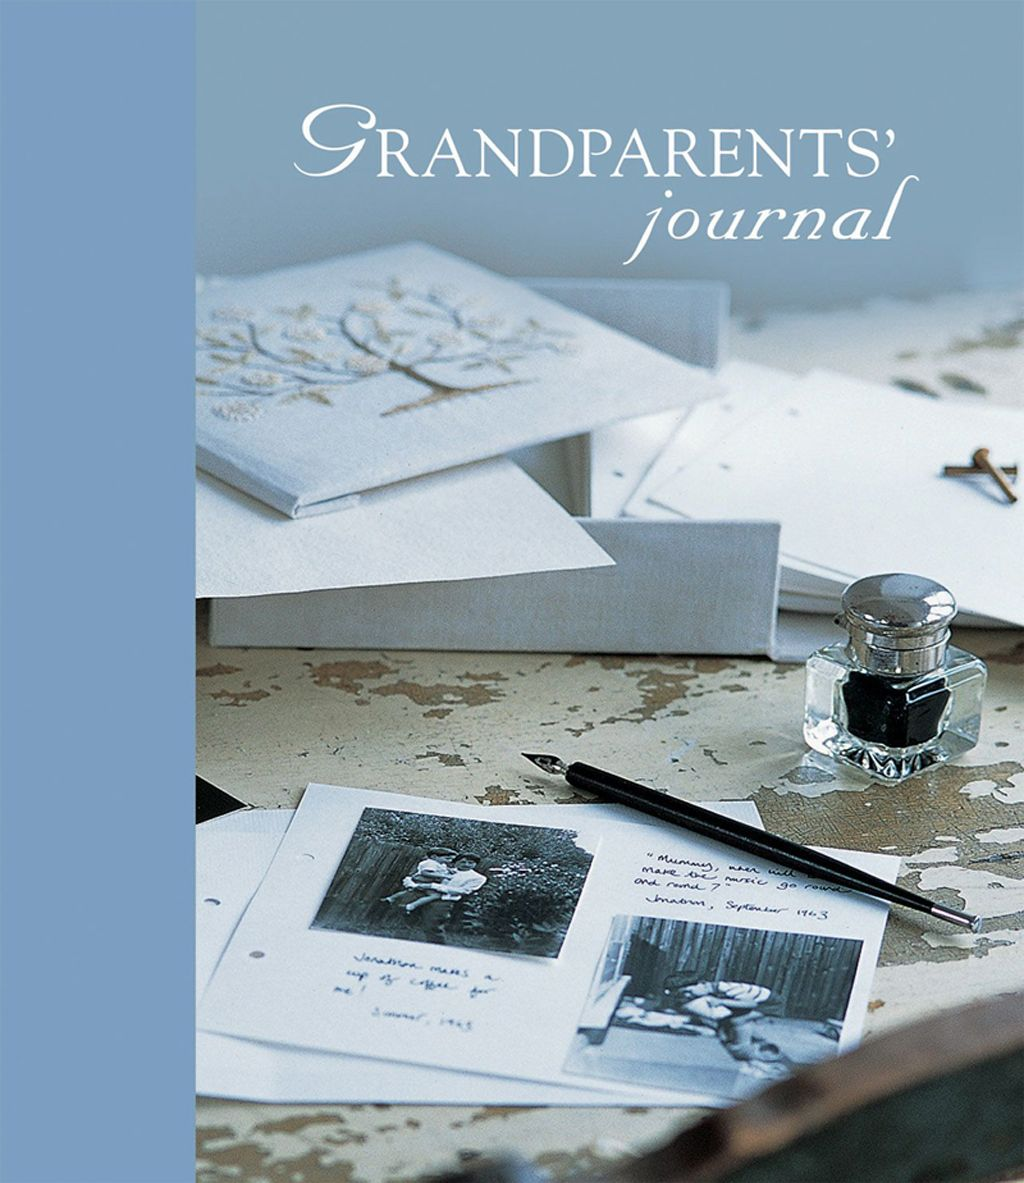 Leave a Legacy: A Grandparent's Journal